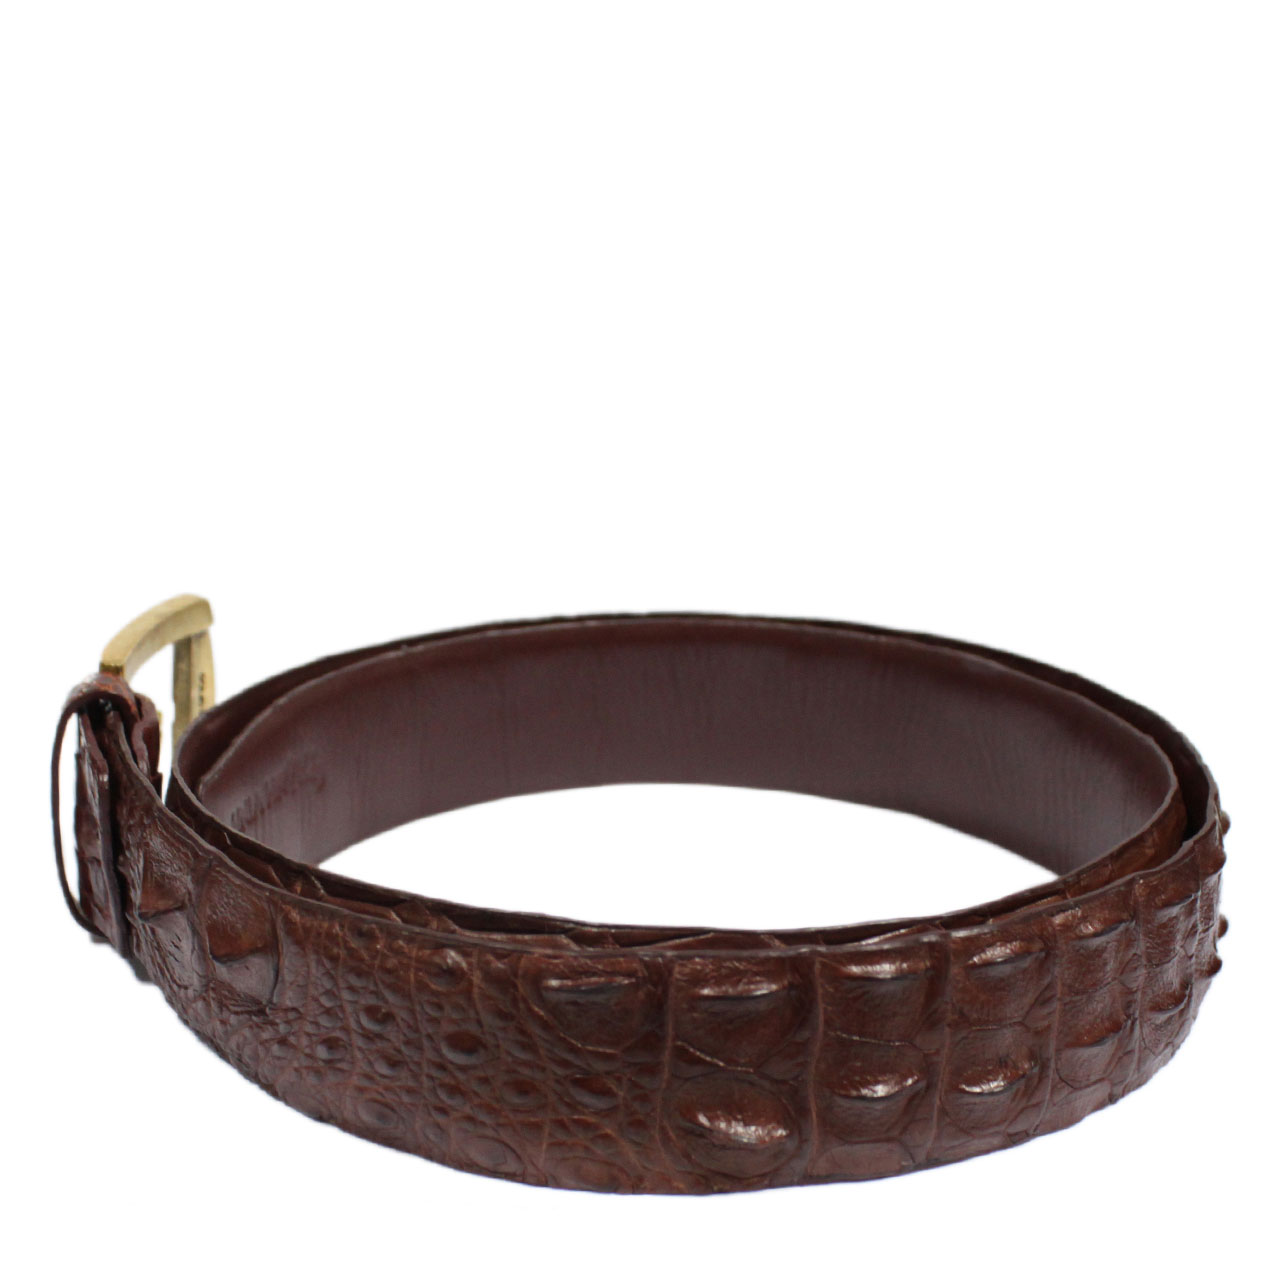 Crocodile Leather Belt S604a